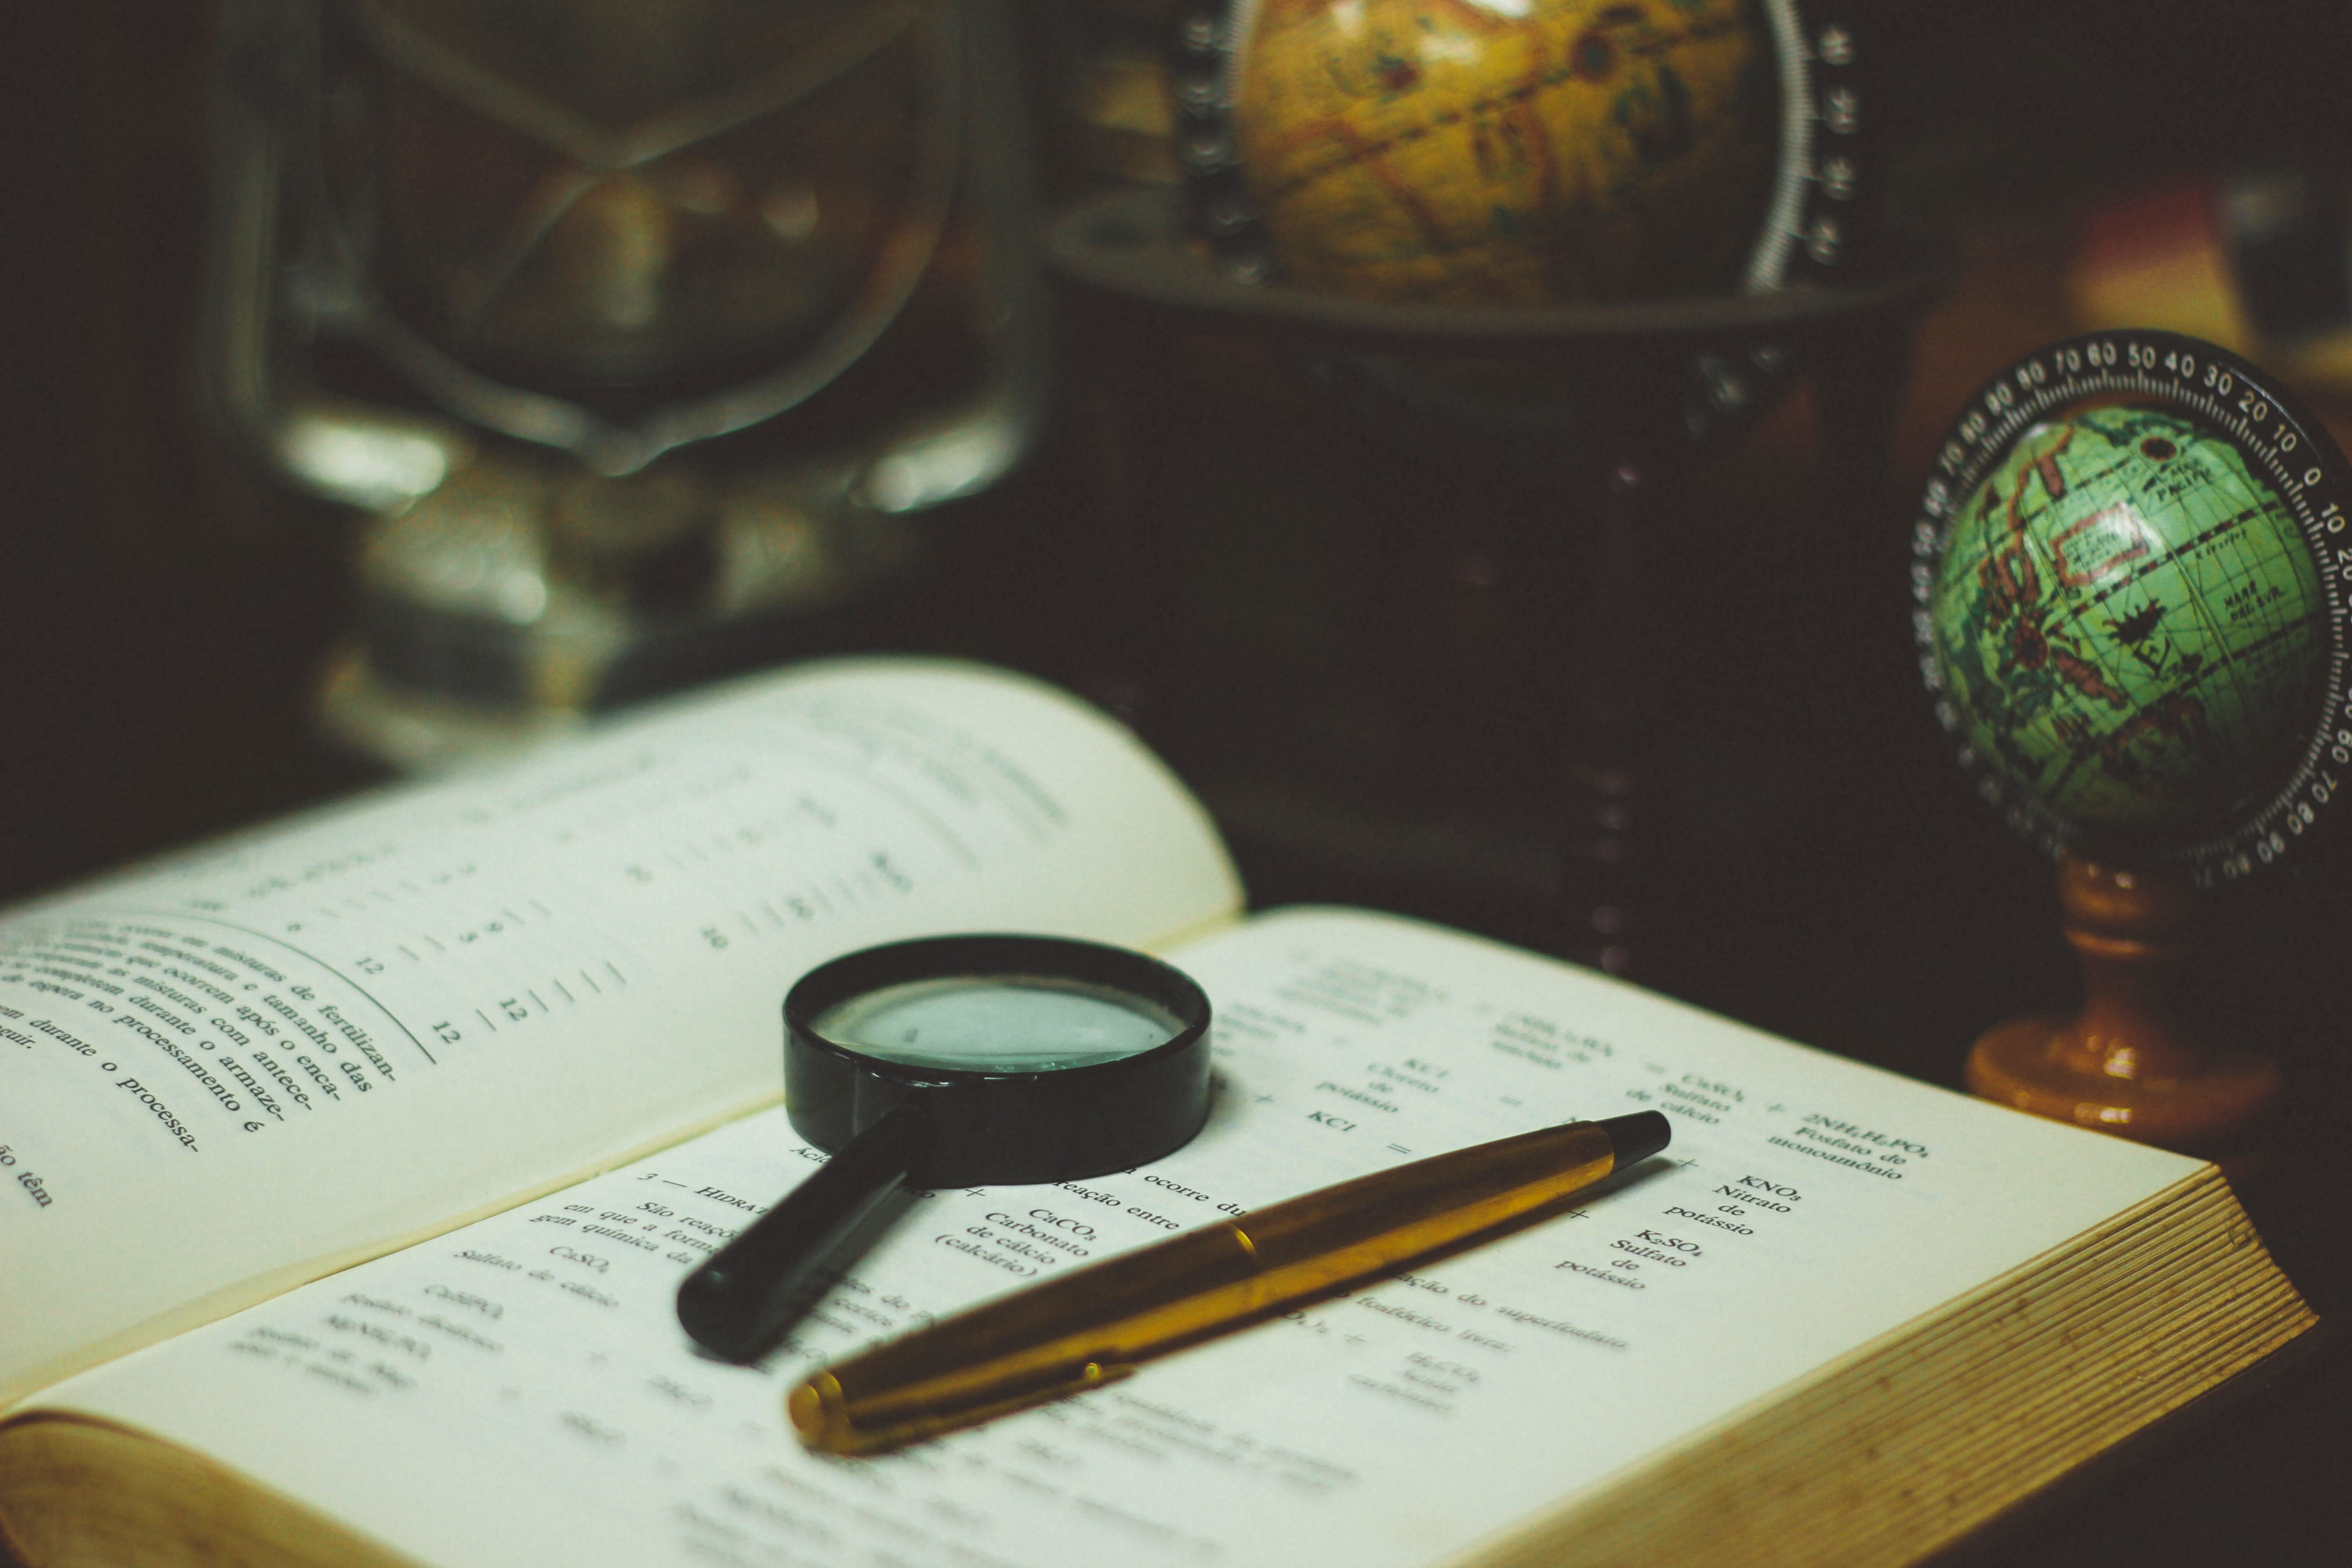 en and magnifying glass on open book sitting next to globes of the Earth; image by João Silas, via Unsplash.com.